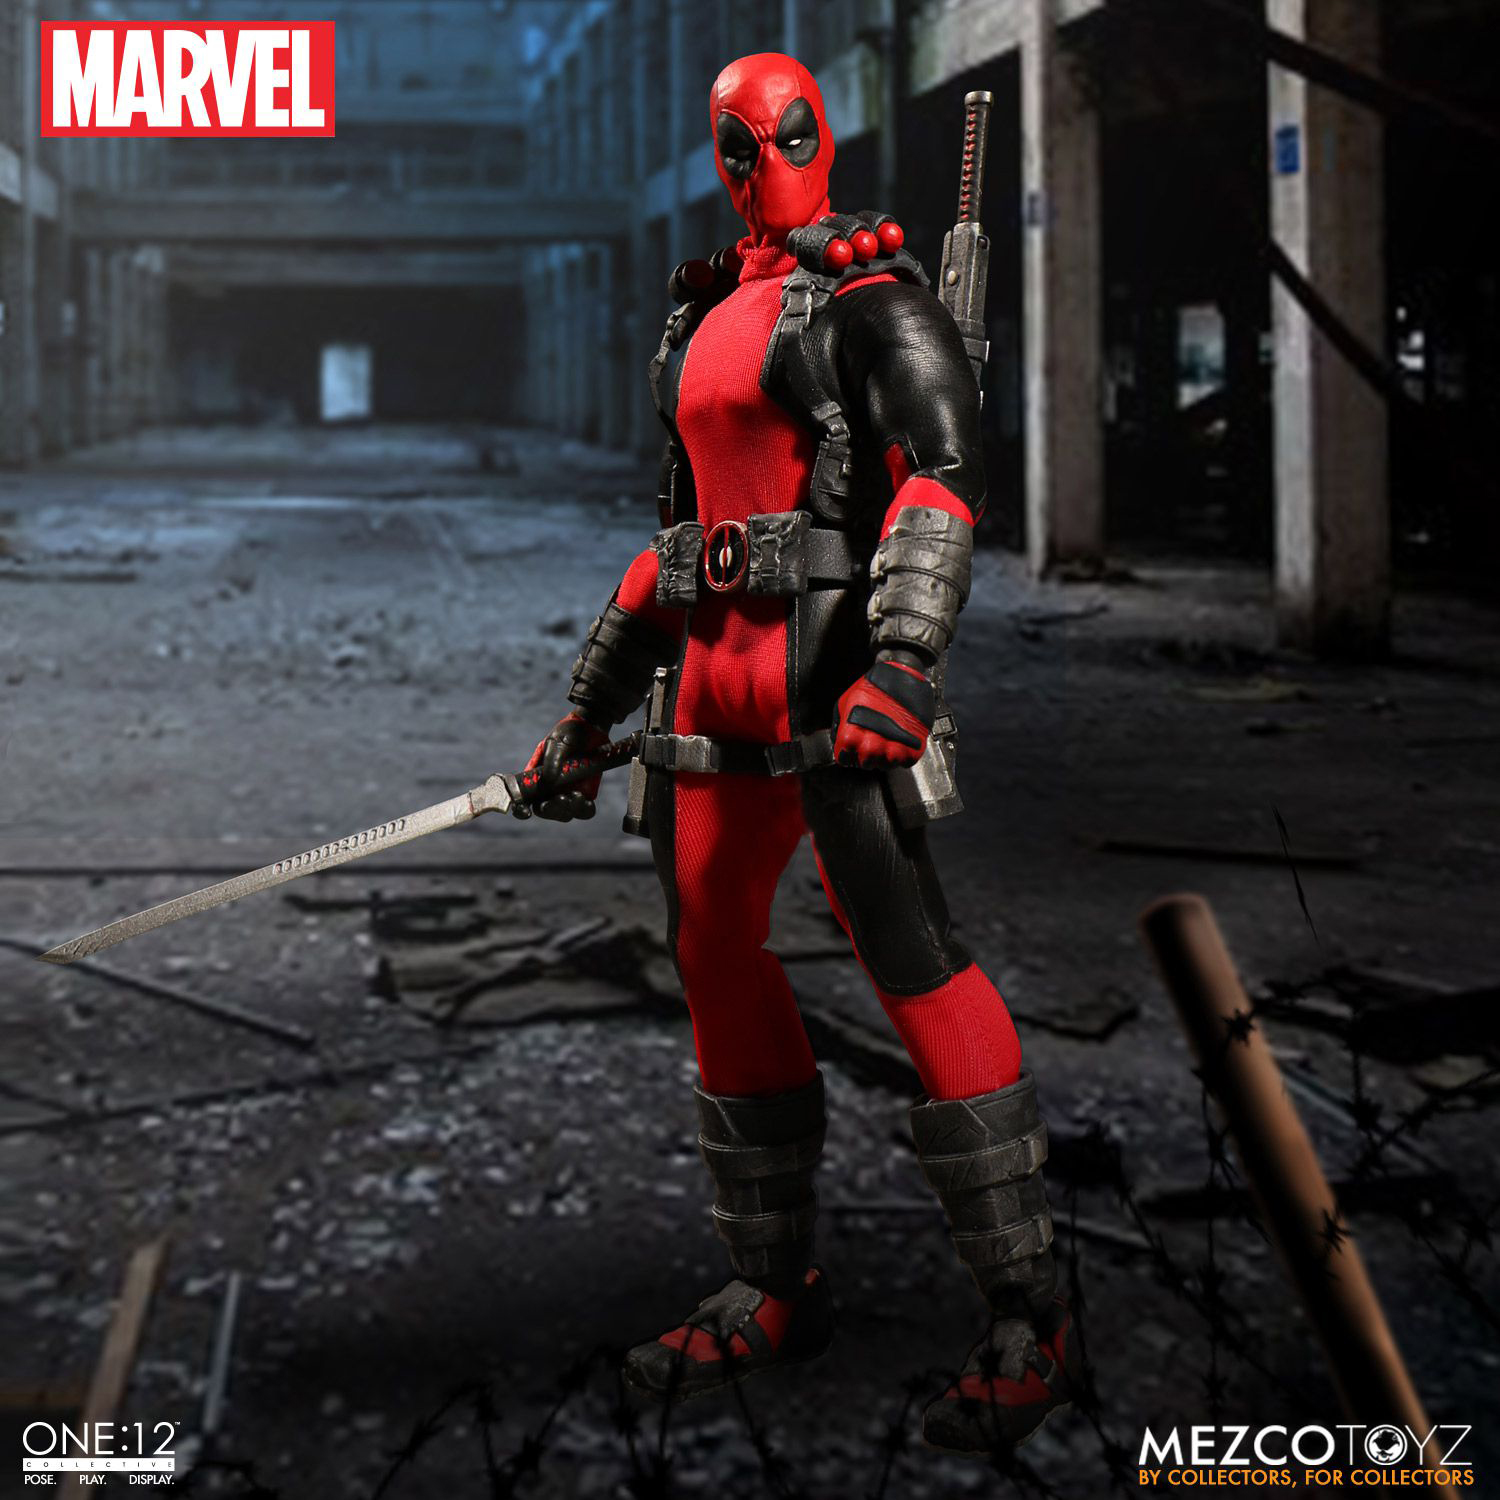 deadpool-mezco-one-12-collective-action-figure-1